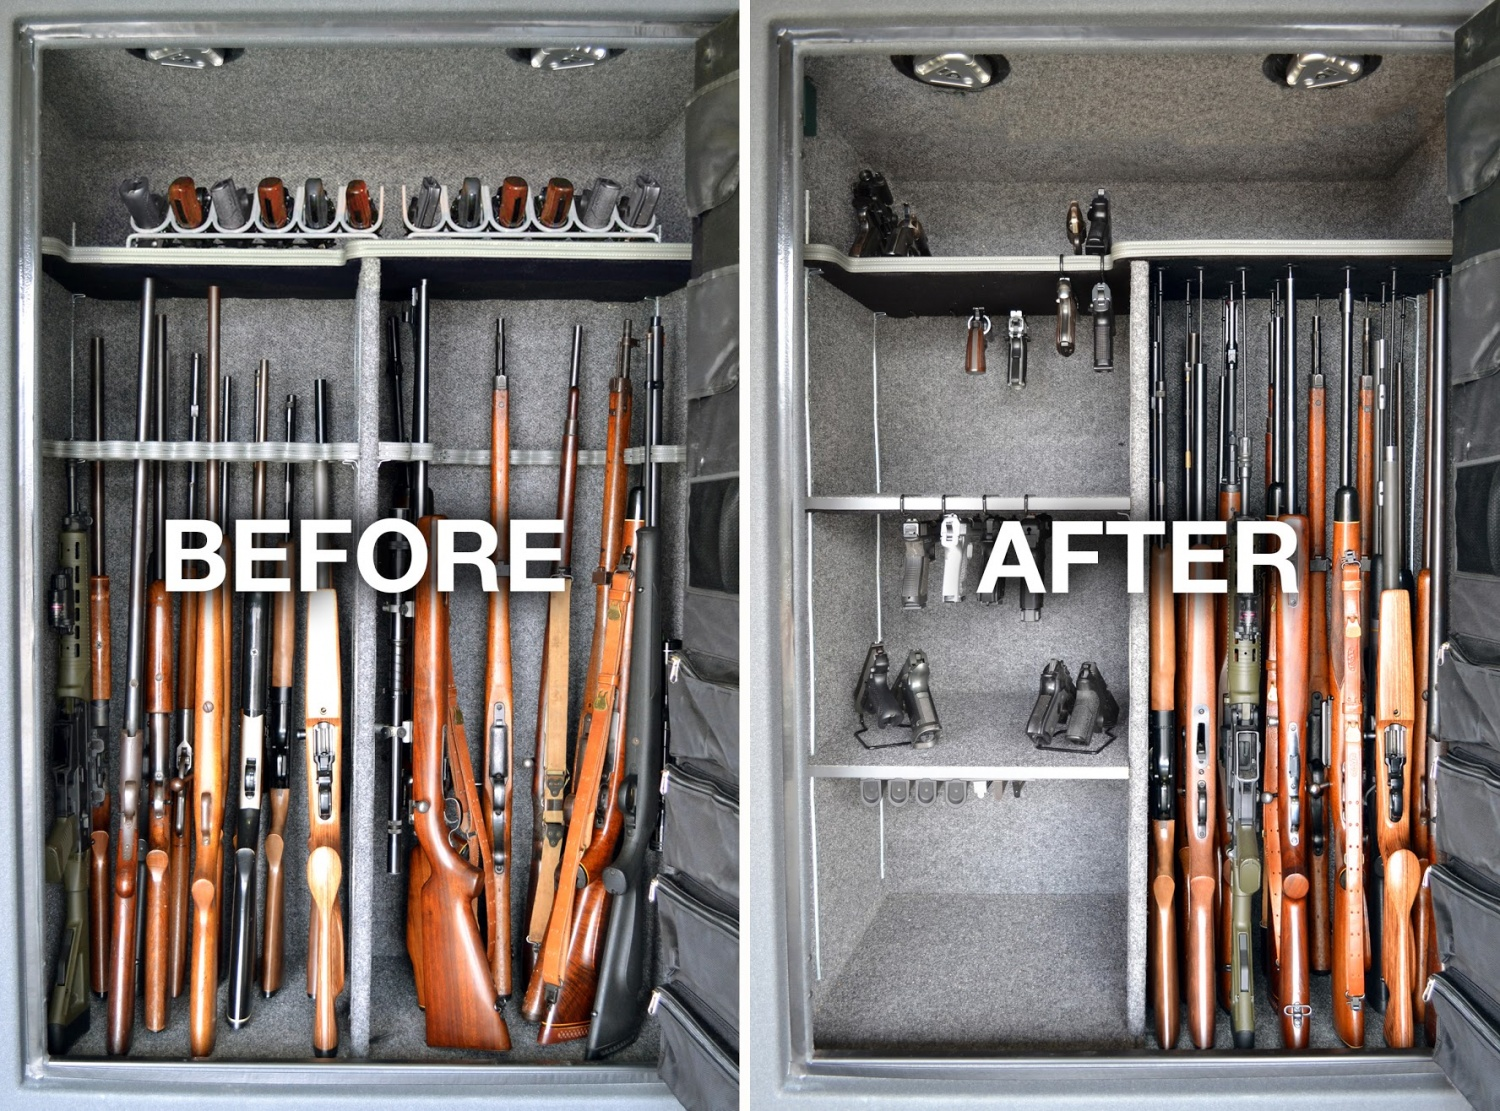 Gun Storage Solutions Helps You Maximize Storage The